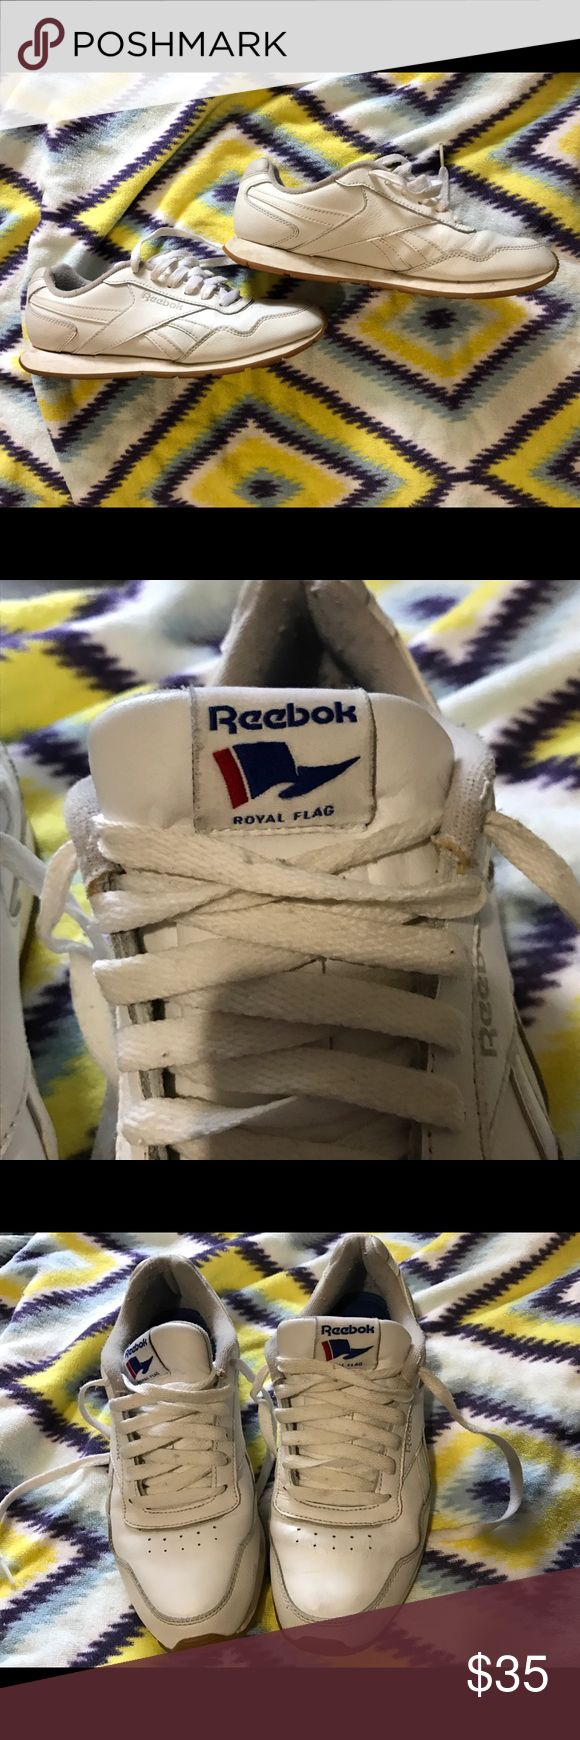 Vintag Reebok Classics Royal Flag Sneakers Shoes For sale are a pair of size 8 Reebok vintage shoes. They are white with a gum bottom. Very cool and old school. Reebok Classic back in the day. Ships same day. Reebok Shoes Sneakers